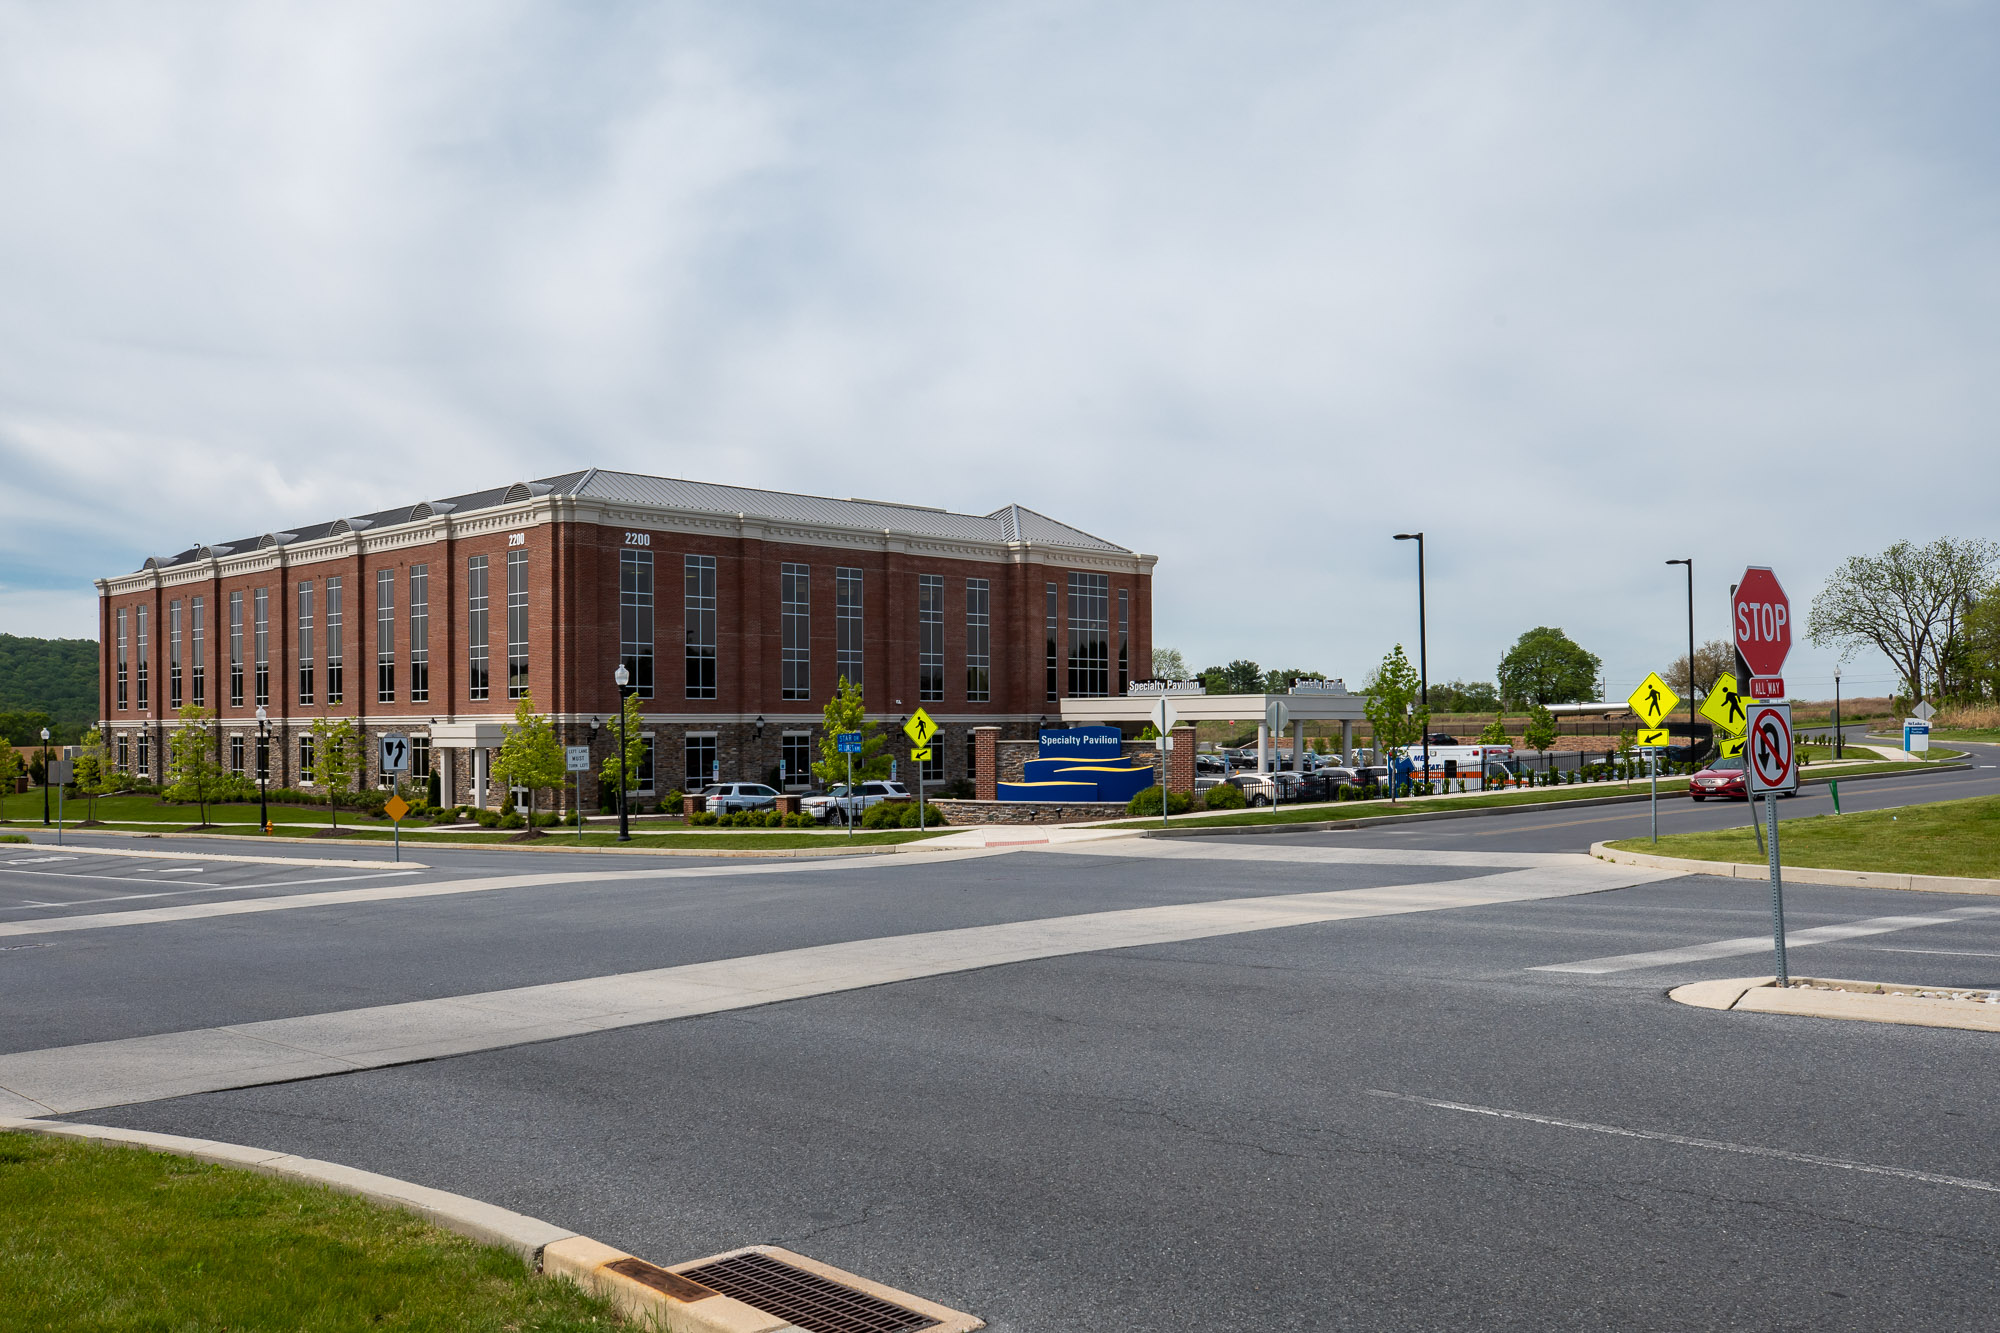 St. Luke's University Health Network Anderson Campus - Specialty Pavilion